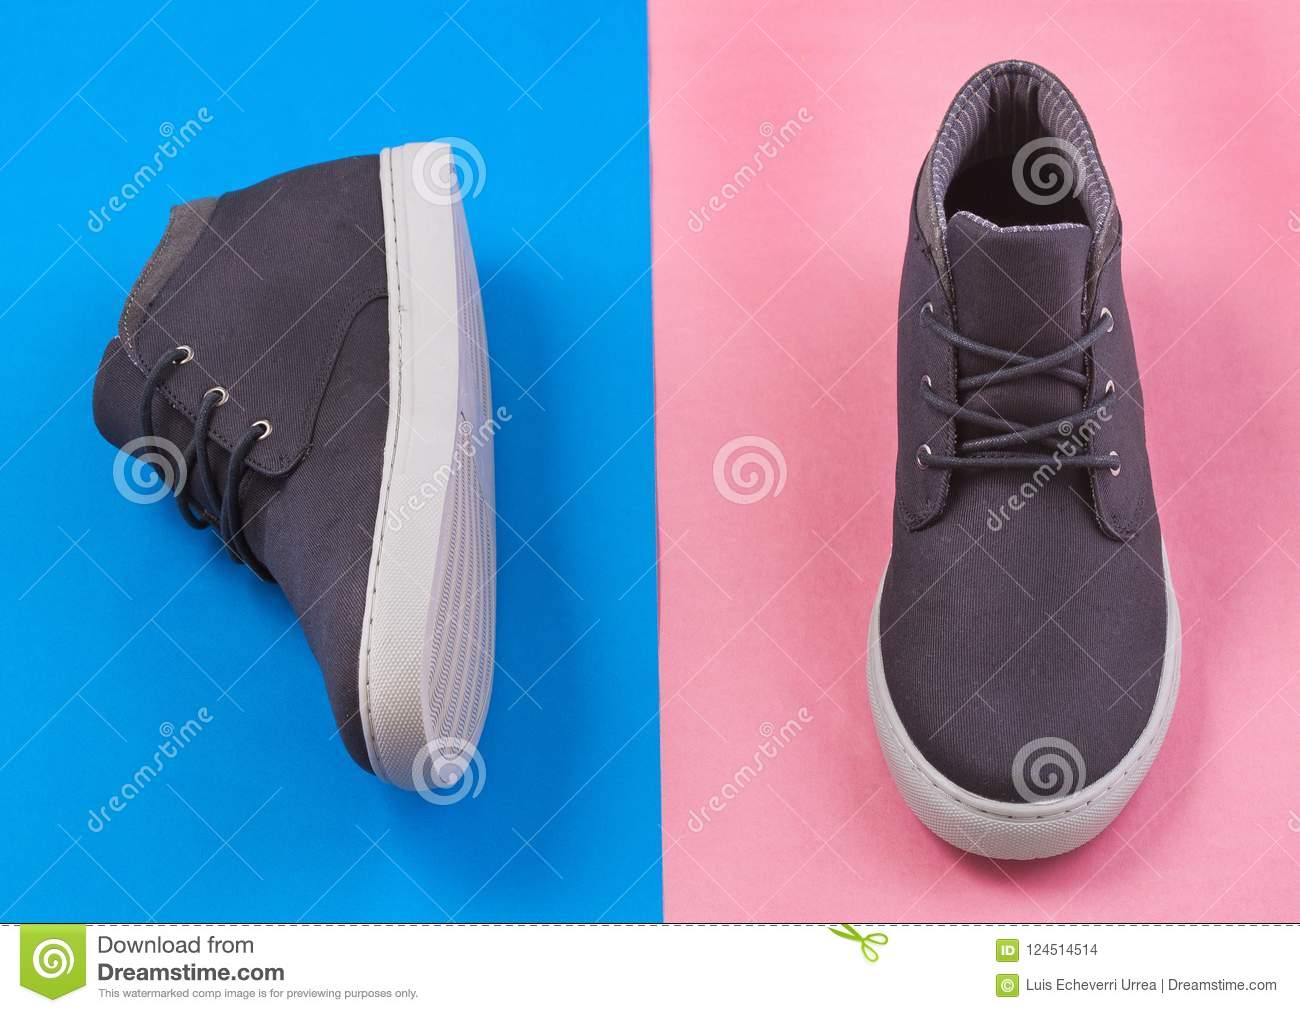 Shoe With White Sole For Men - Top View